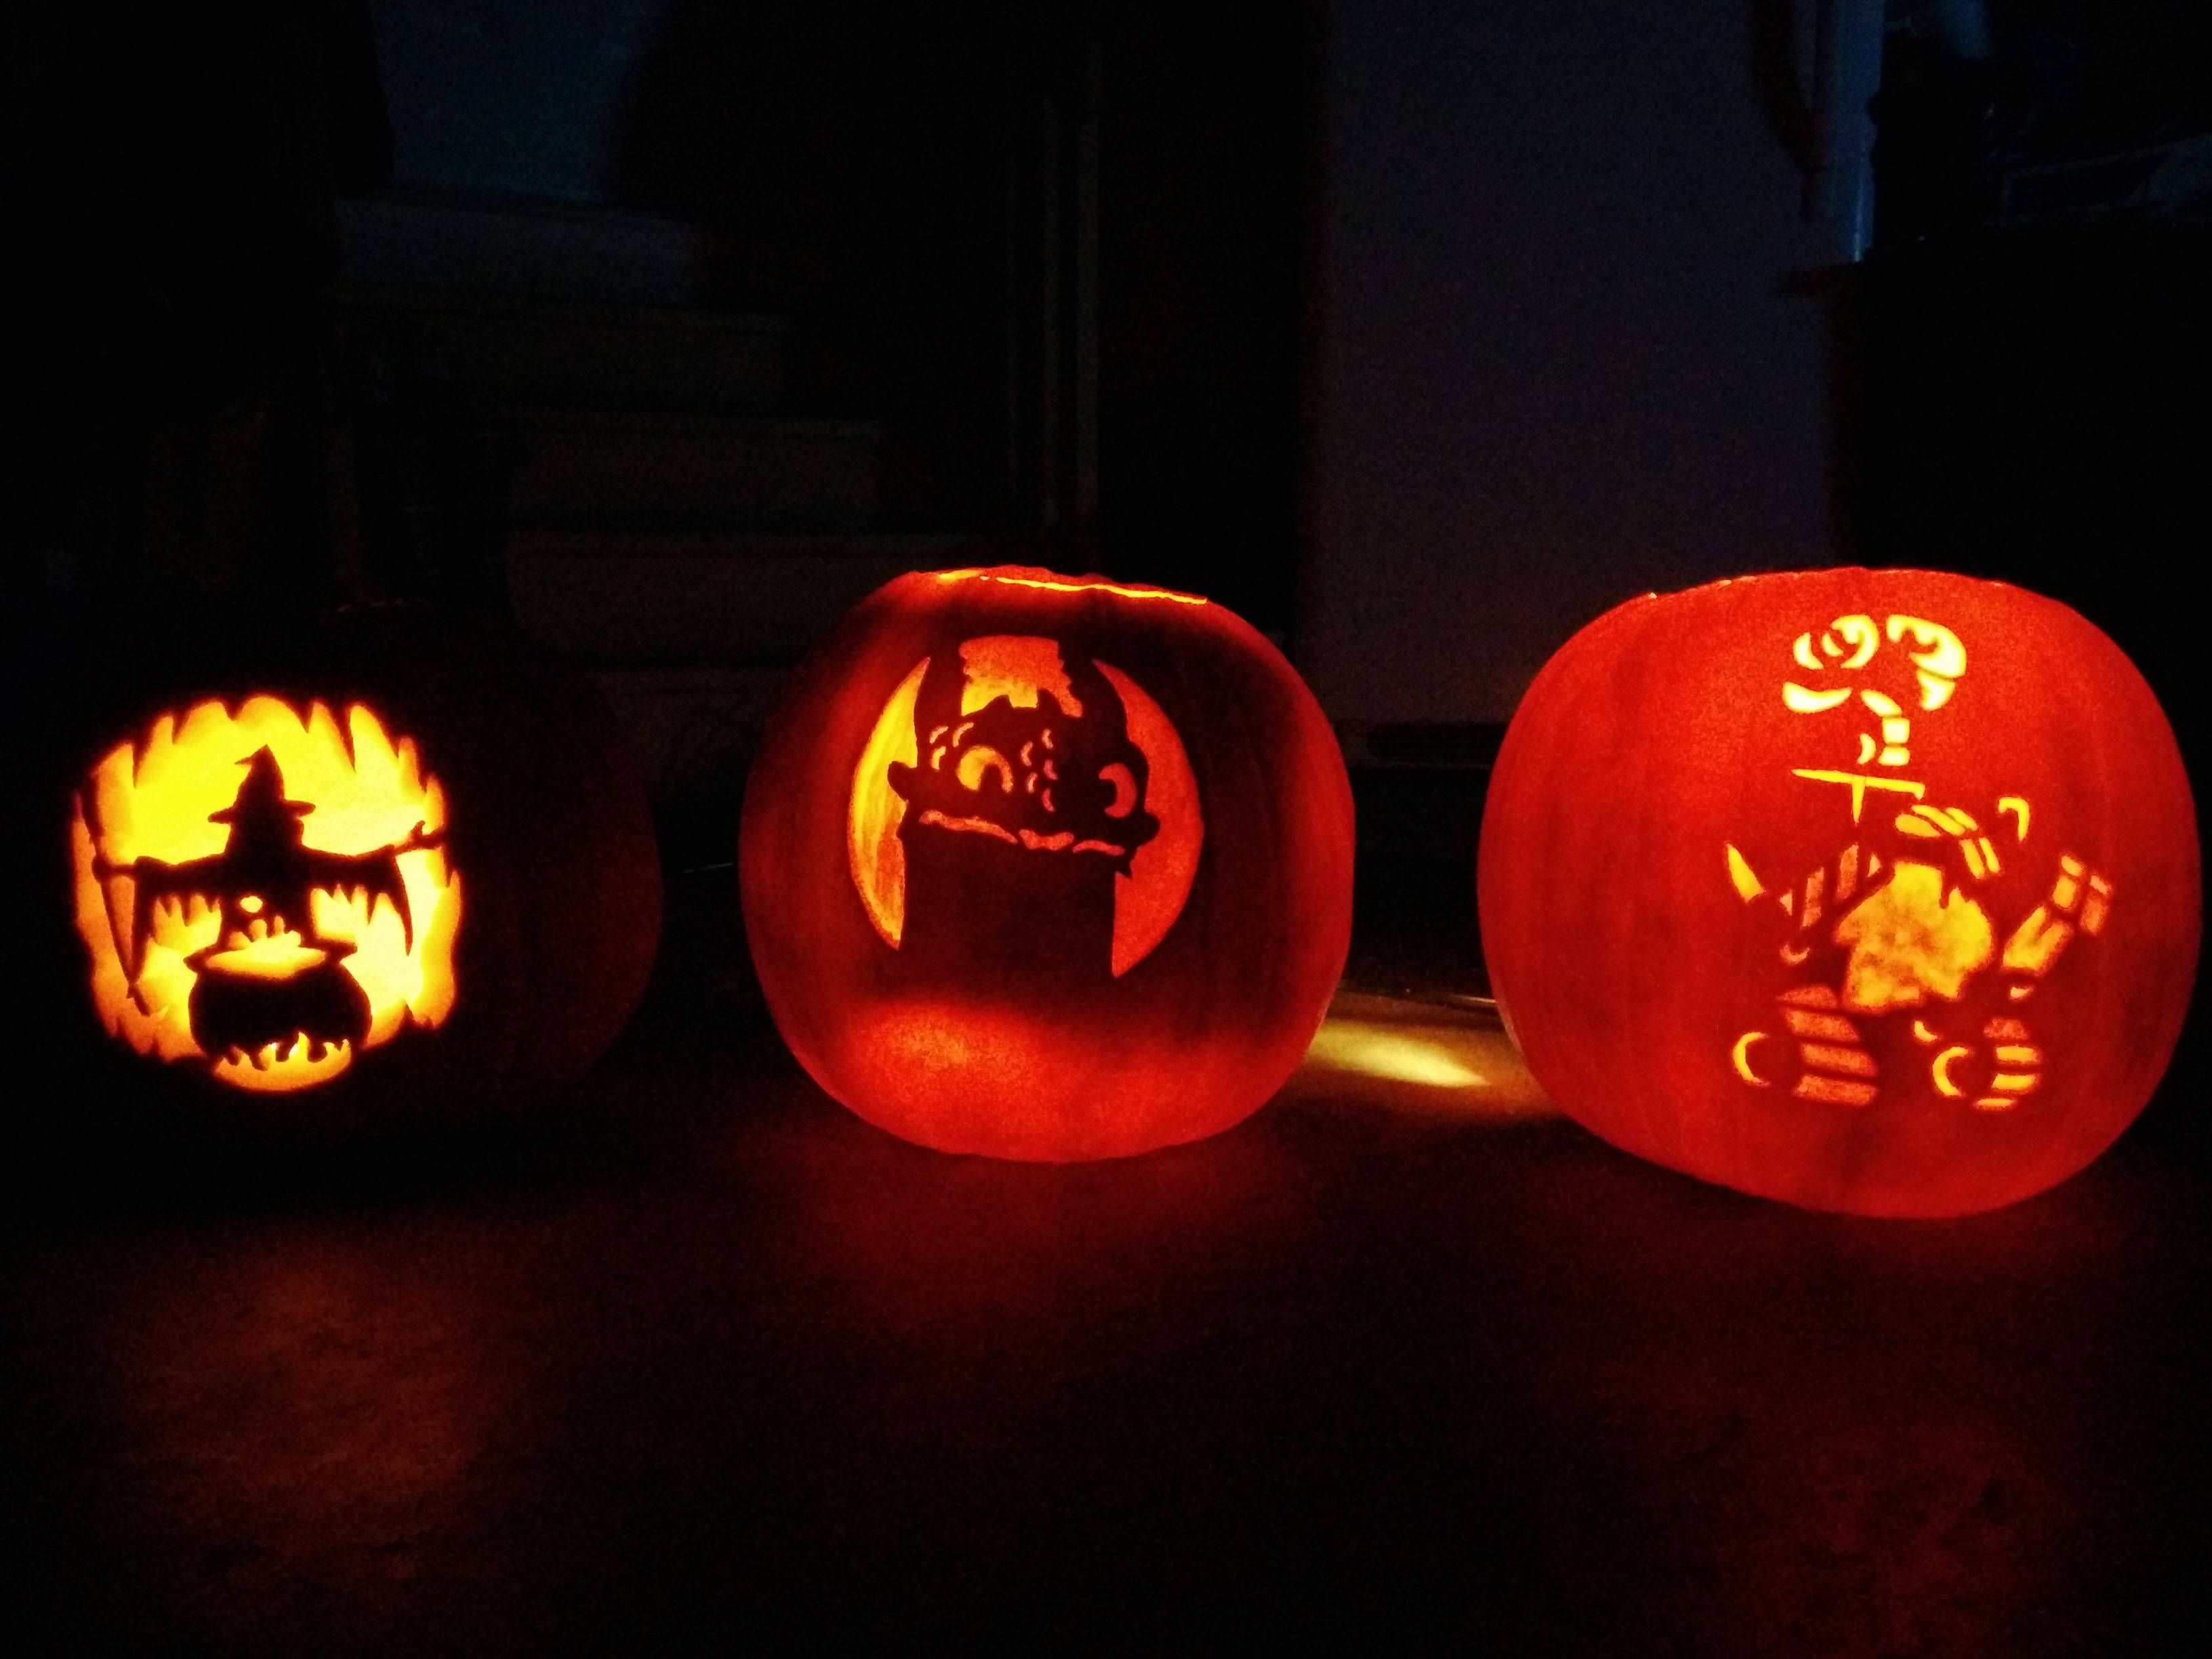 pumpkins by the gf and I this year... People keep asking 'what the third one is'... Help me out here reddit!